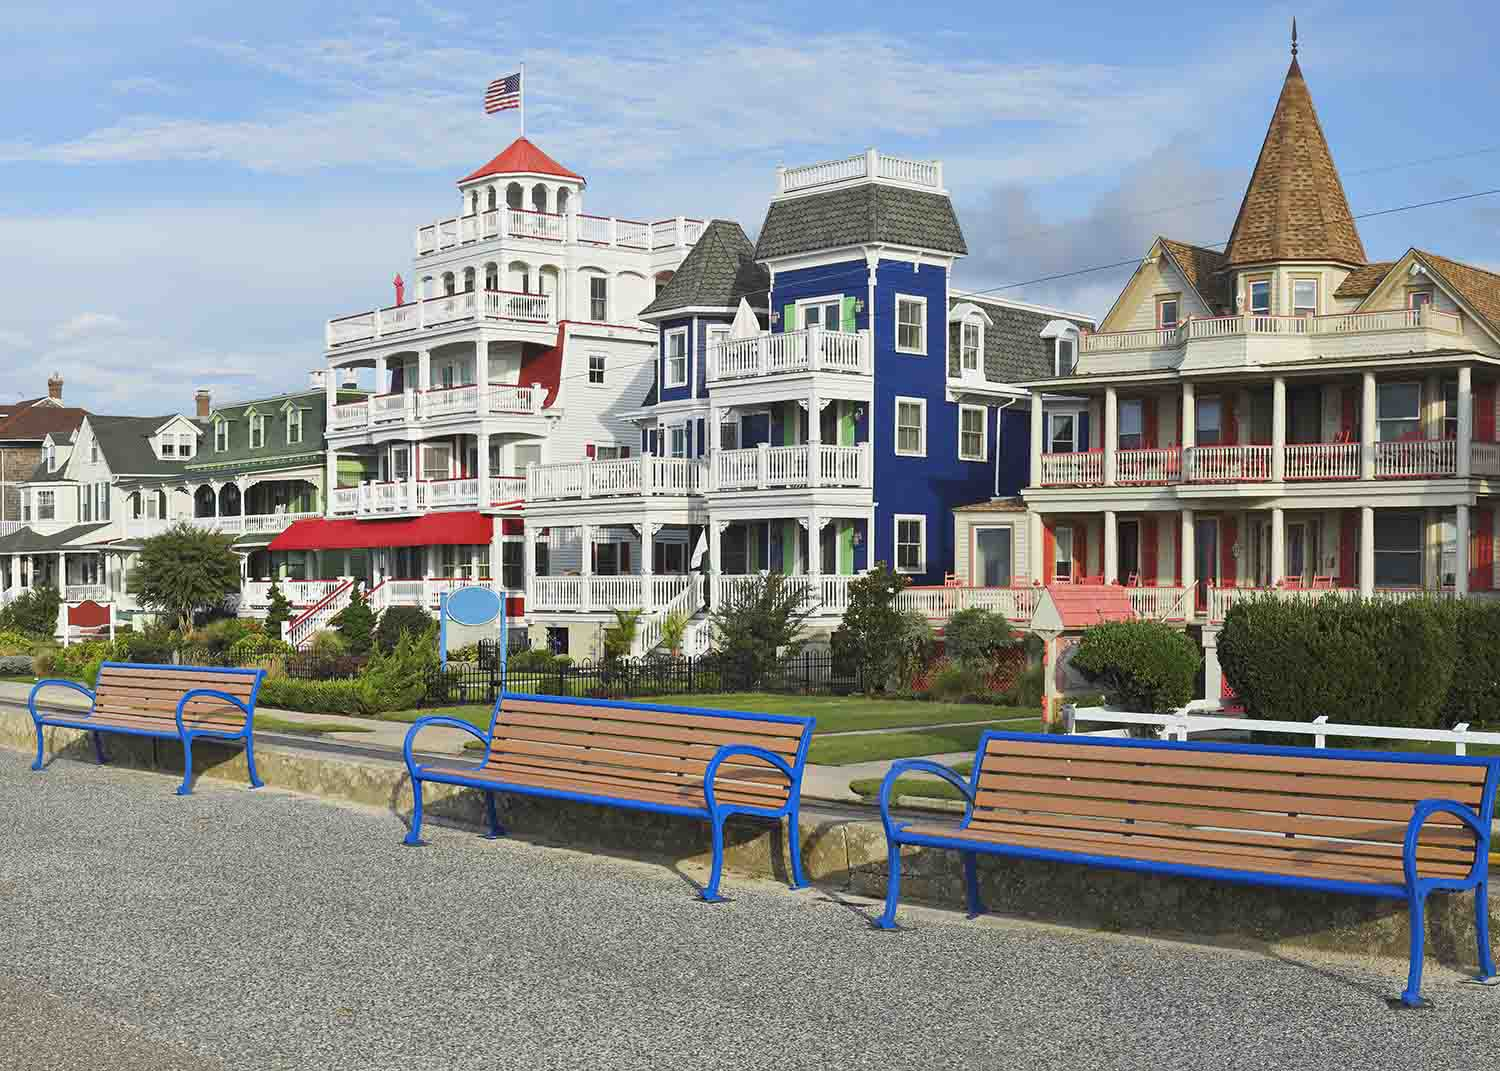 Historic buildings in Cape May, NJ